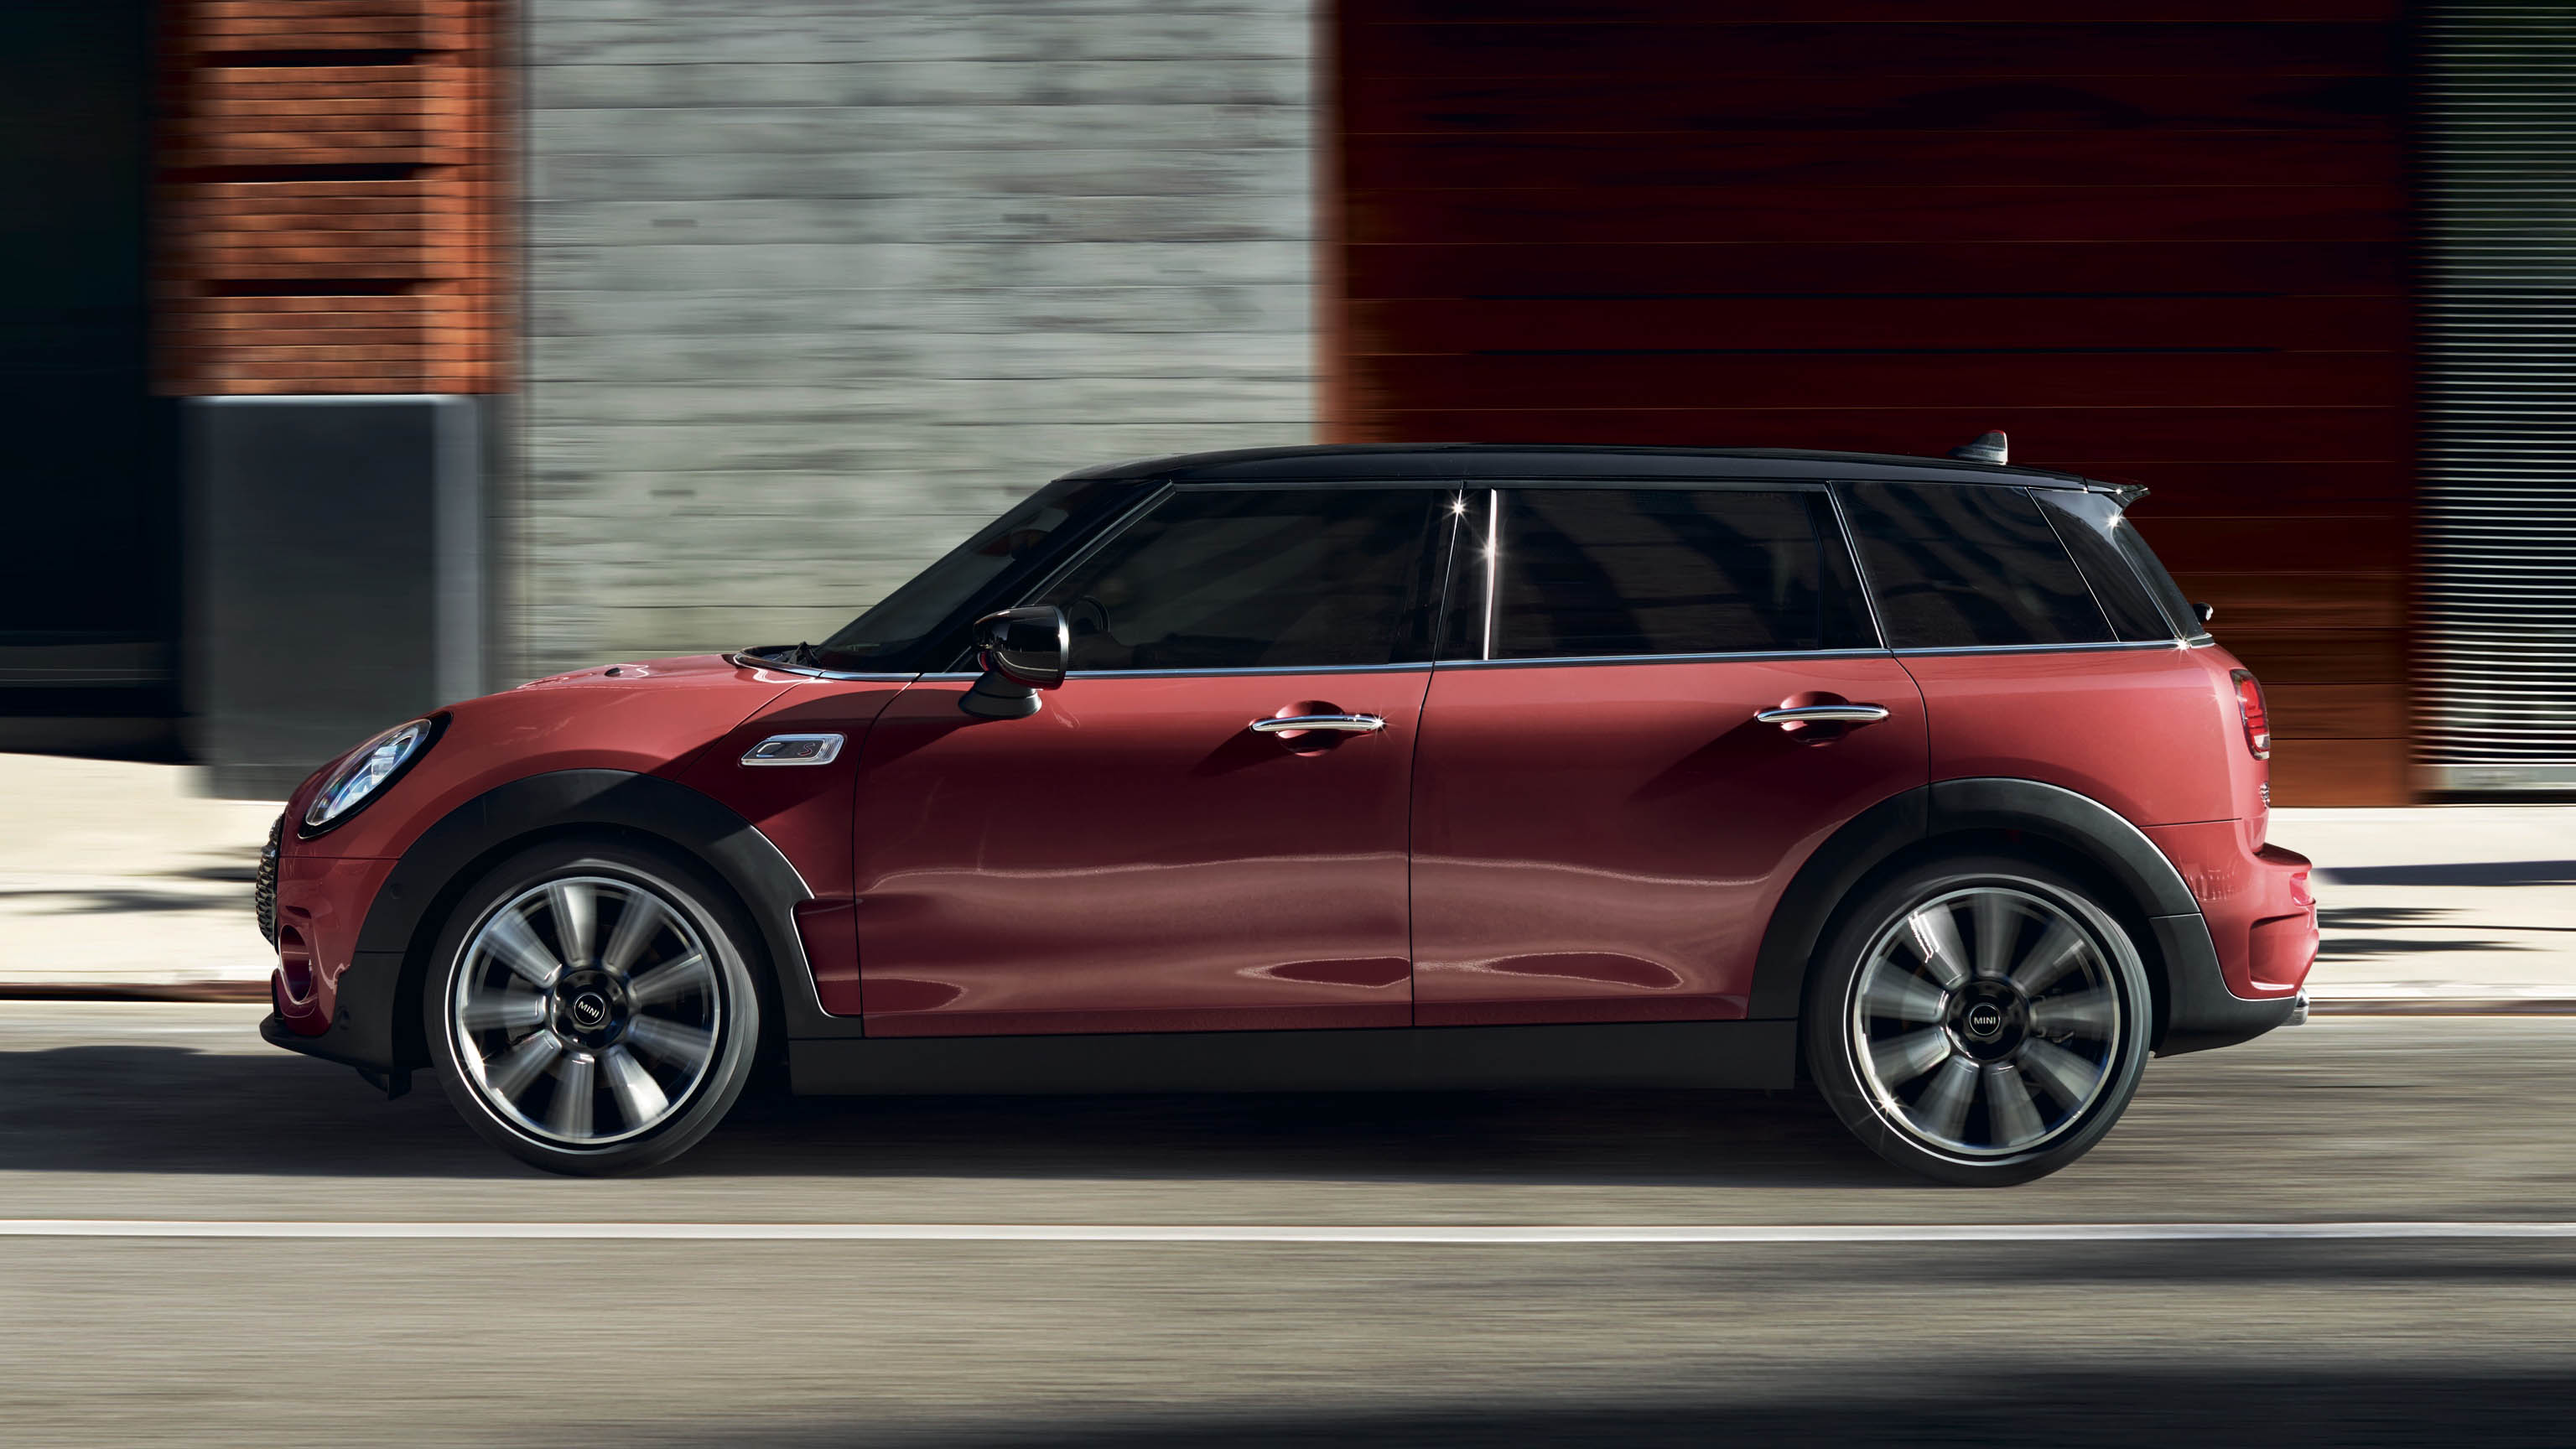 mini-clubman-highlights-side-view-wide